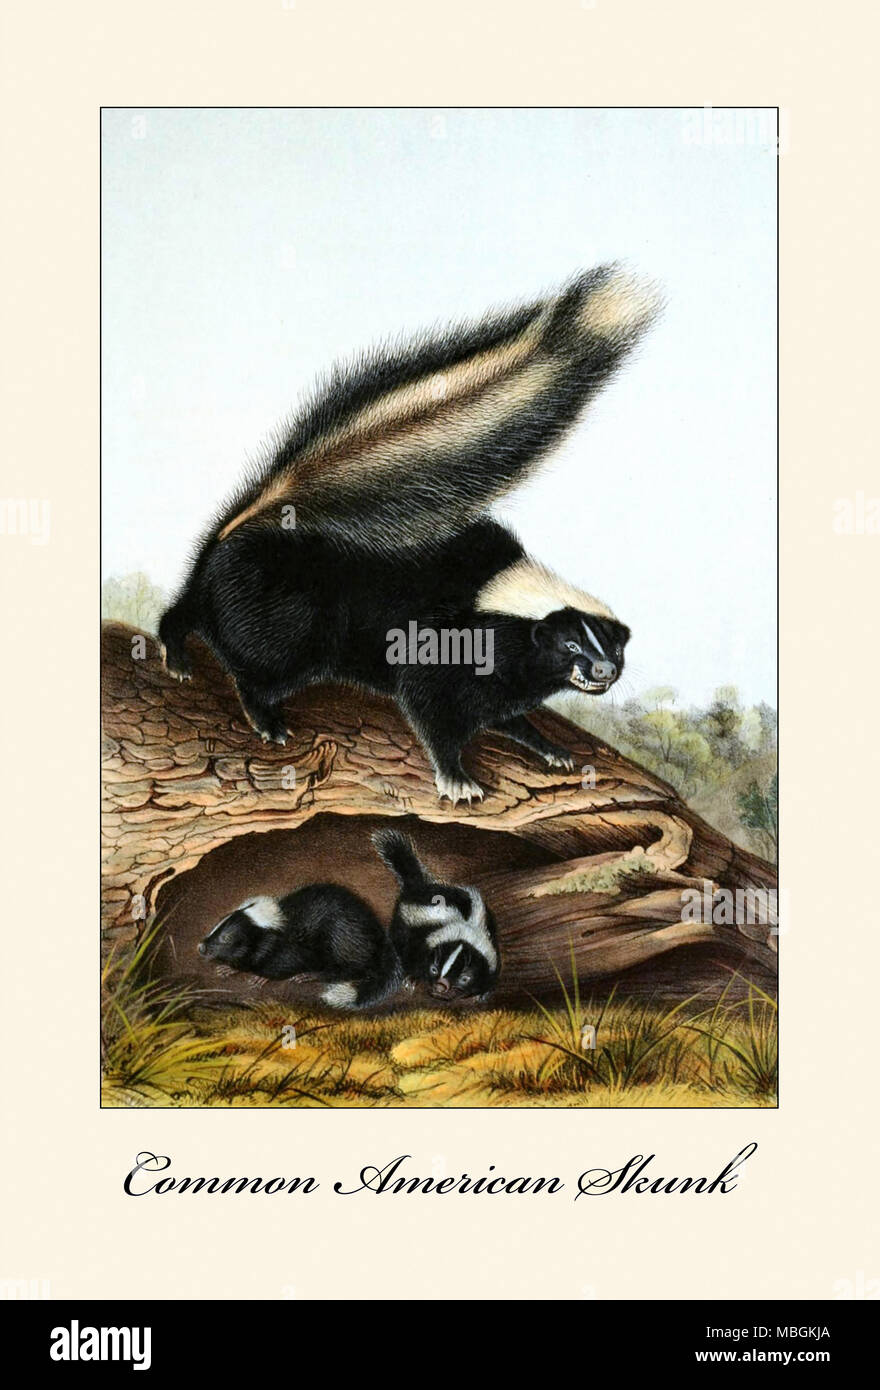 Common American Skunk - Stock Image